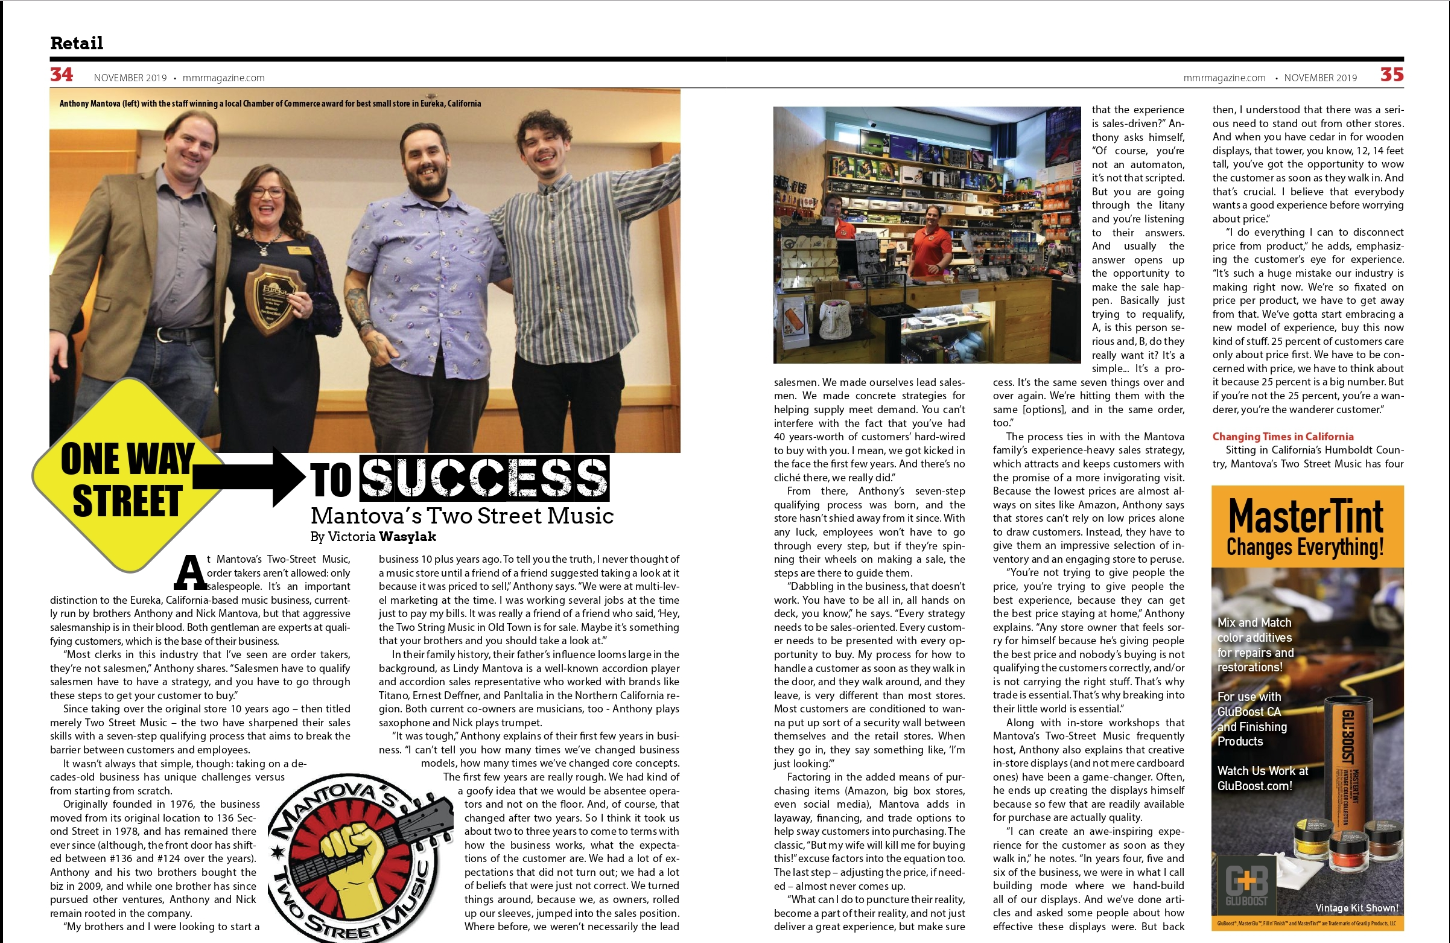 Special thanks to MMR Magazine for a retailer of MI business in Eureka